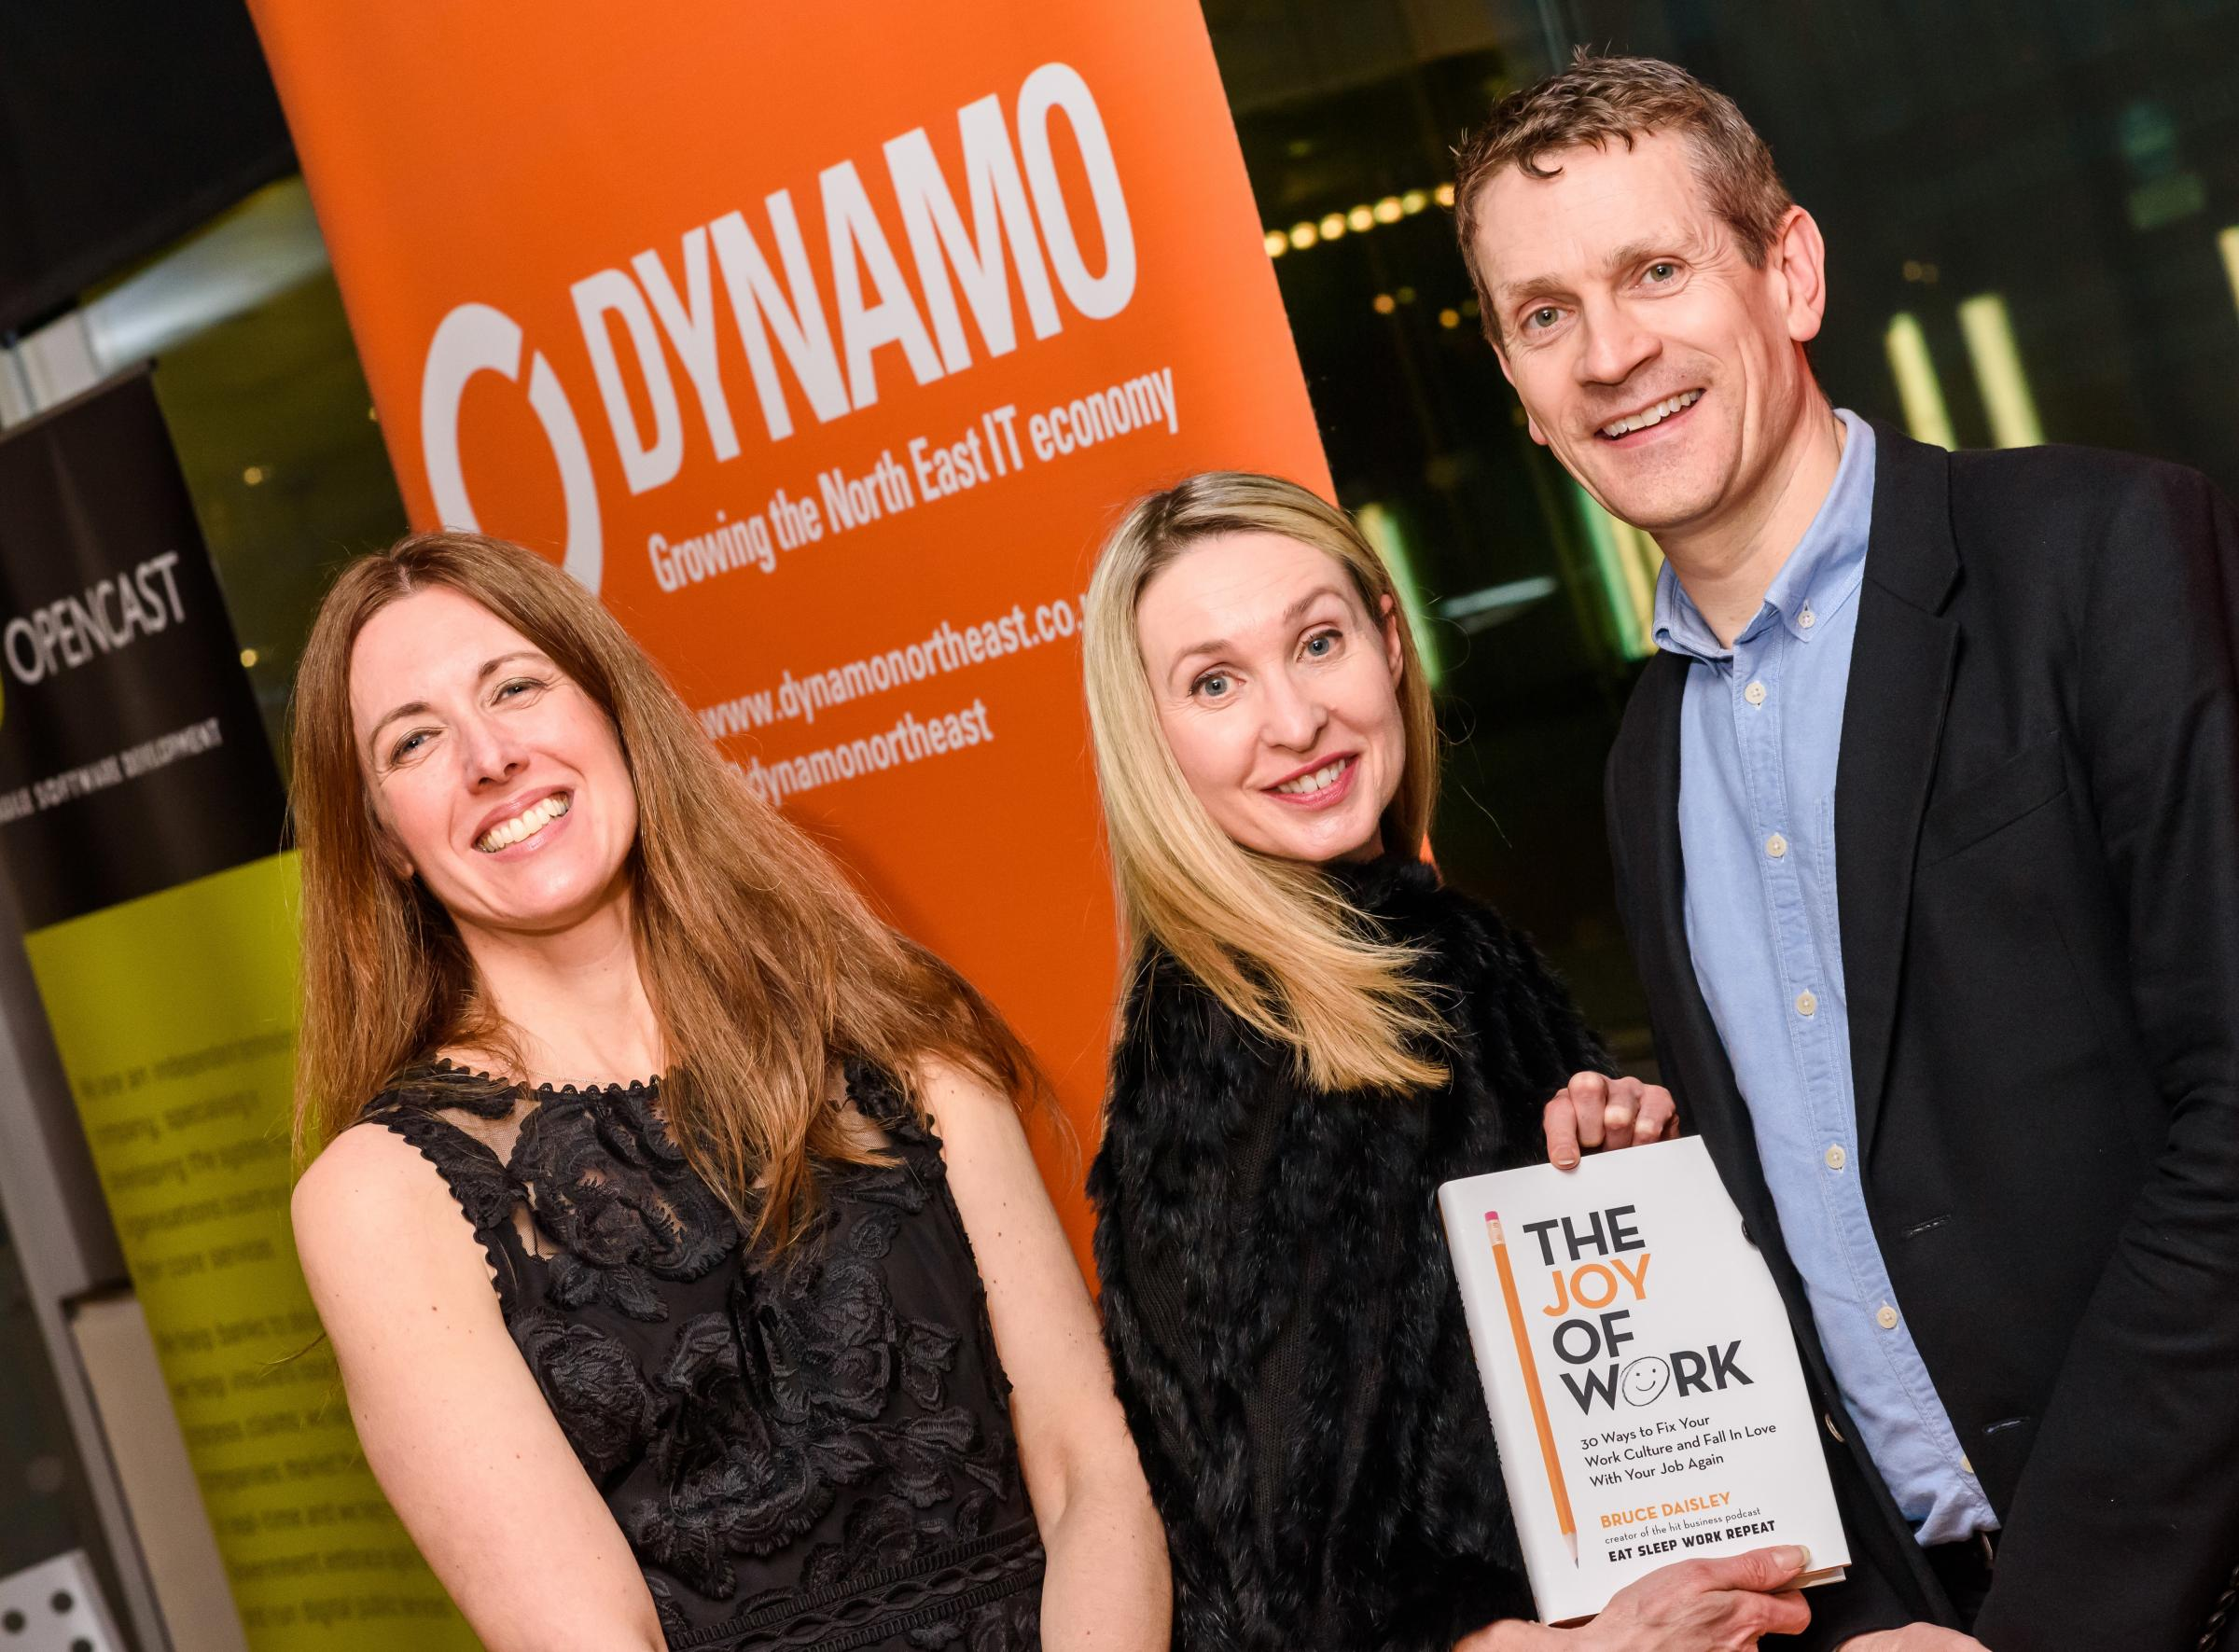 ANNUAL DINNER: From left, Dynamo's Head of Engagement Anne Macdonald, Chair Giselle Stewart and Twitter's Bruce Daisley. Picture: JAY DAWSON/TYNESIGHT PHOTOGRAPHY